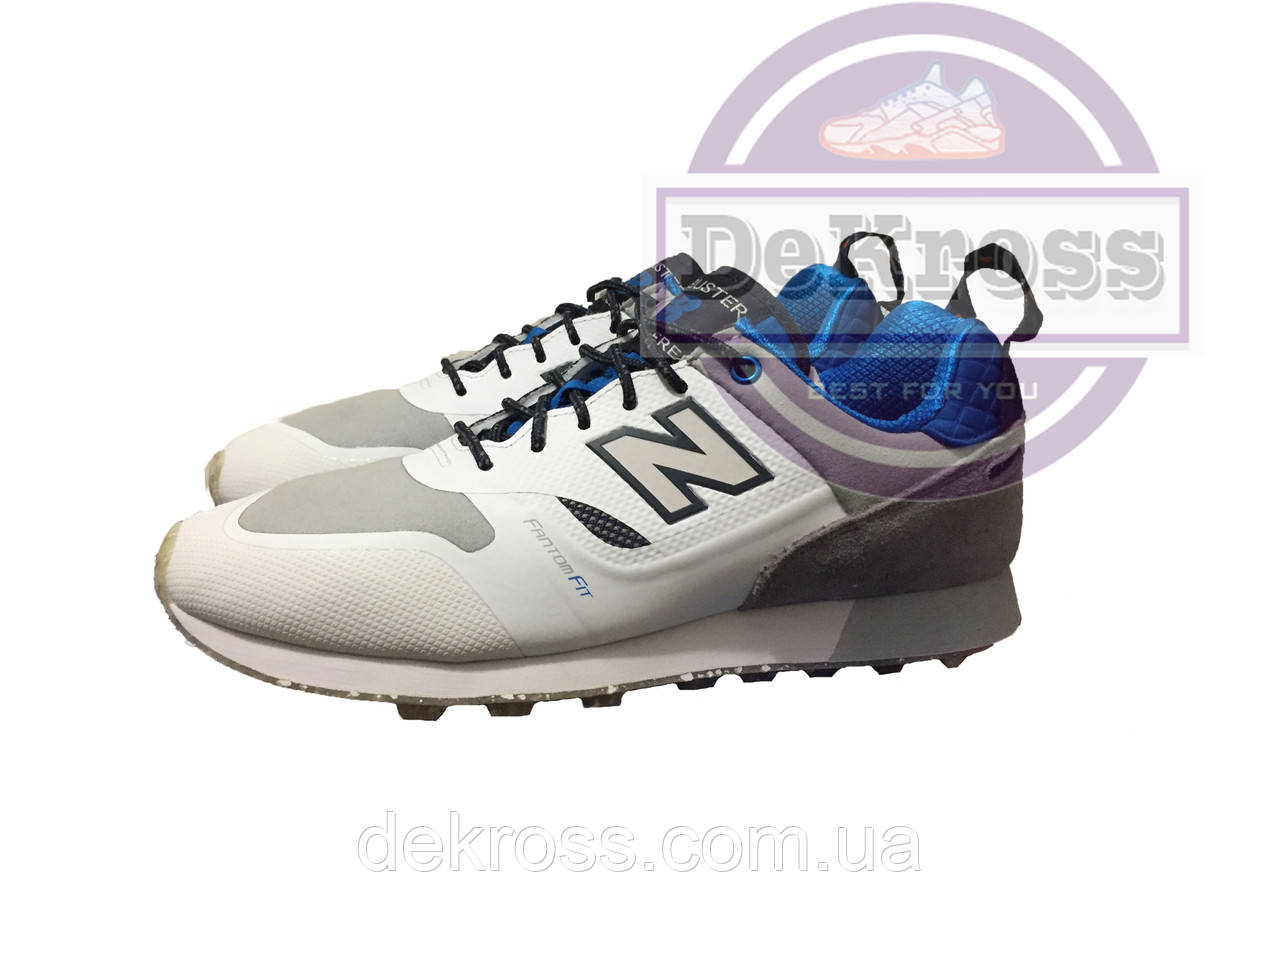 Кроссовки New Balance Trailbuster Re-engineered Оригинал TBTFHWB -  Интернет-магазин Dekross в Киеве dfa7a3998d76e